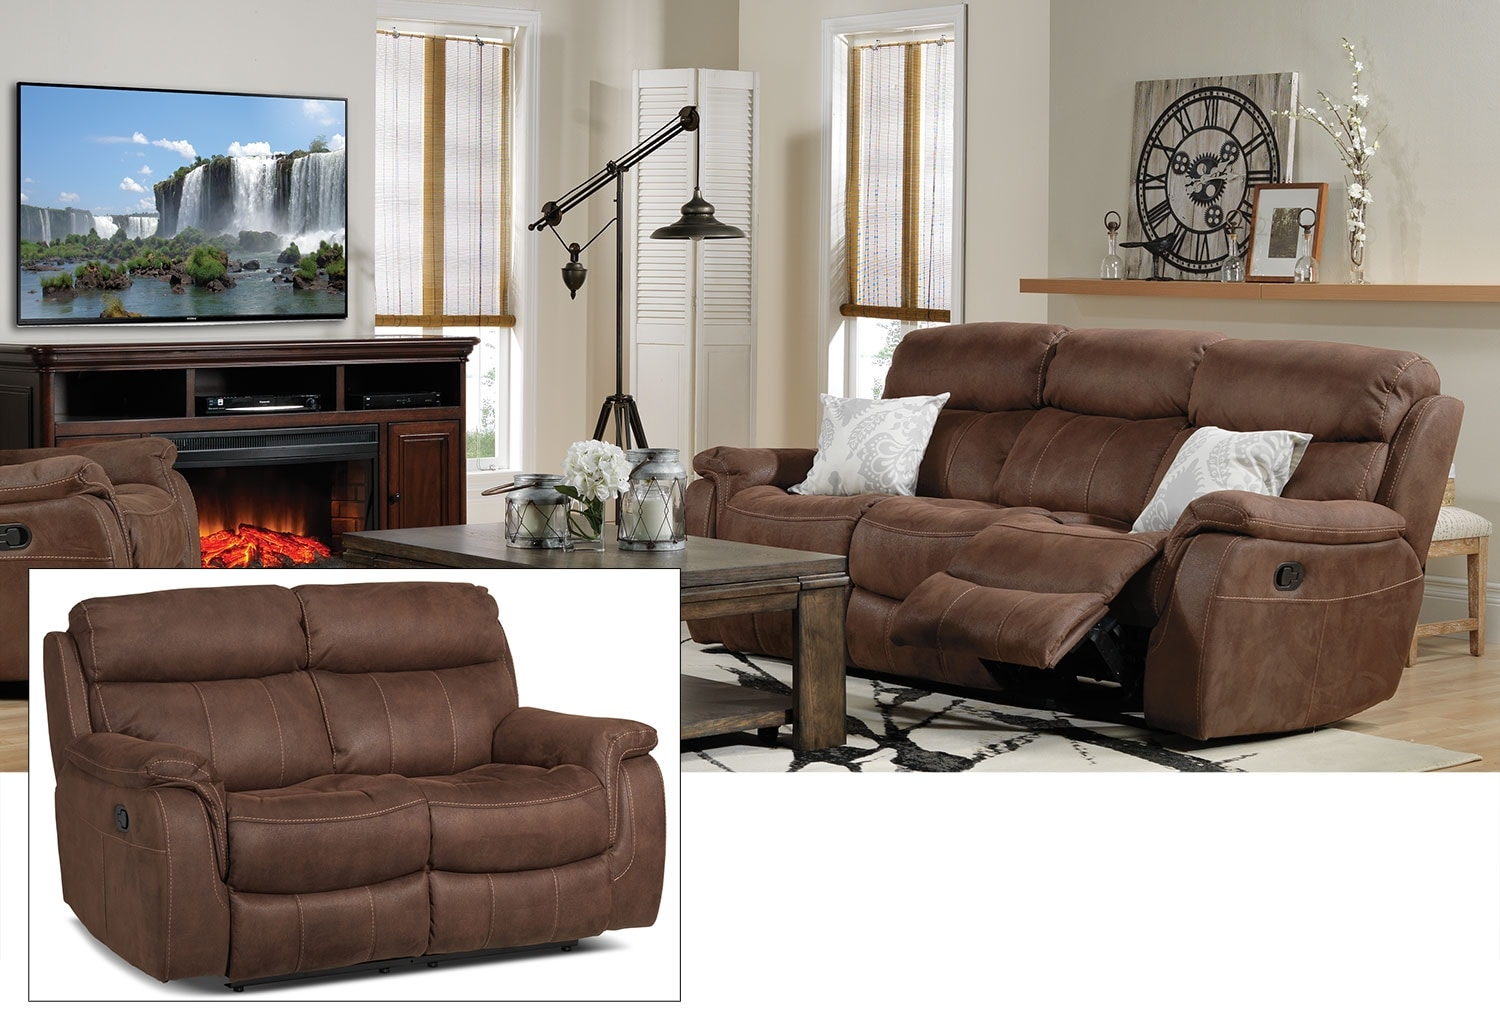 Morrow Reclining Sofa and Reclining Loveseat Set - Saddle Brown